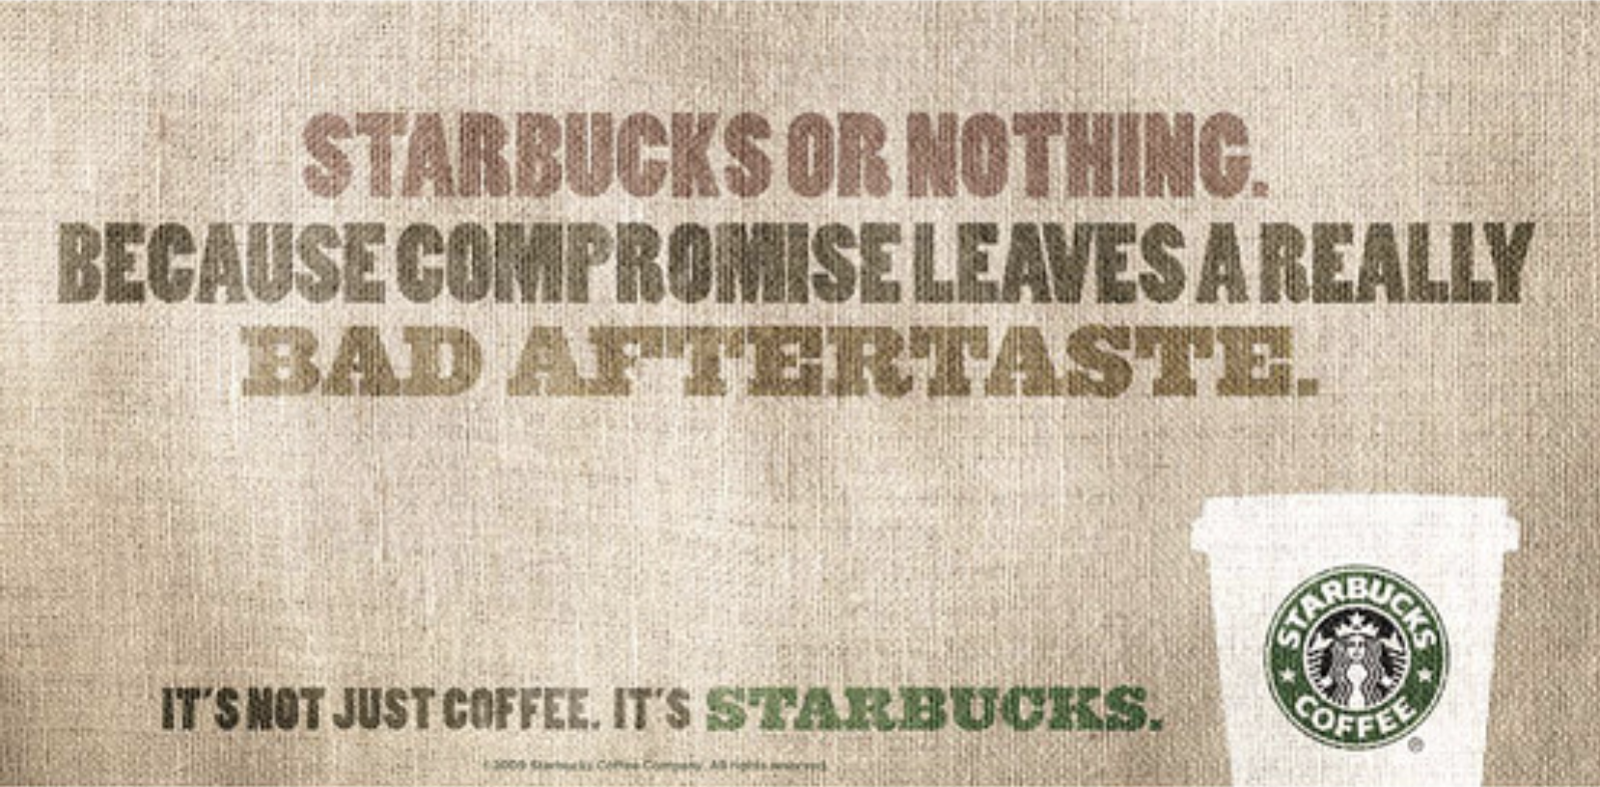 examples of brand repositioning - Starbucks